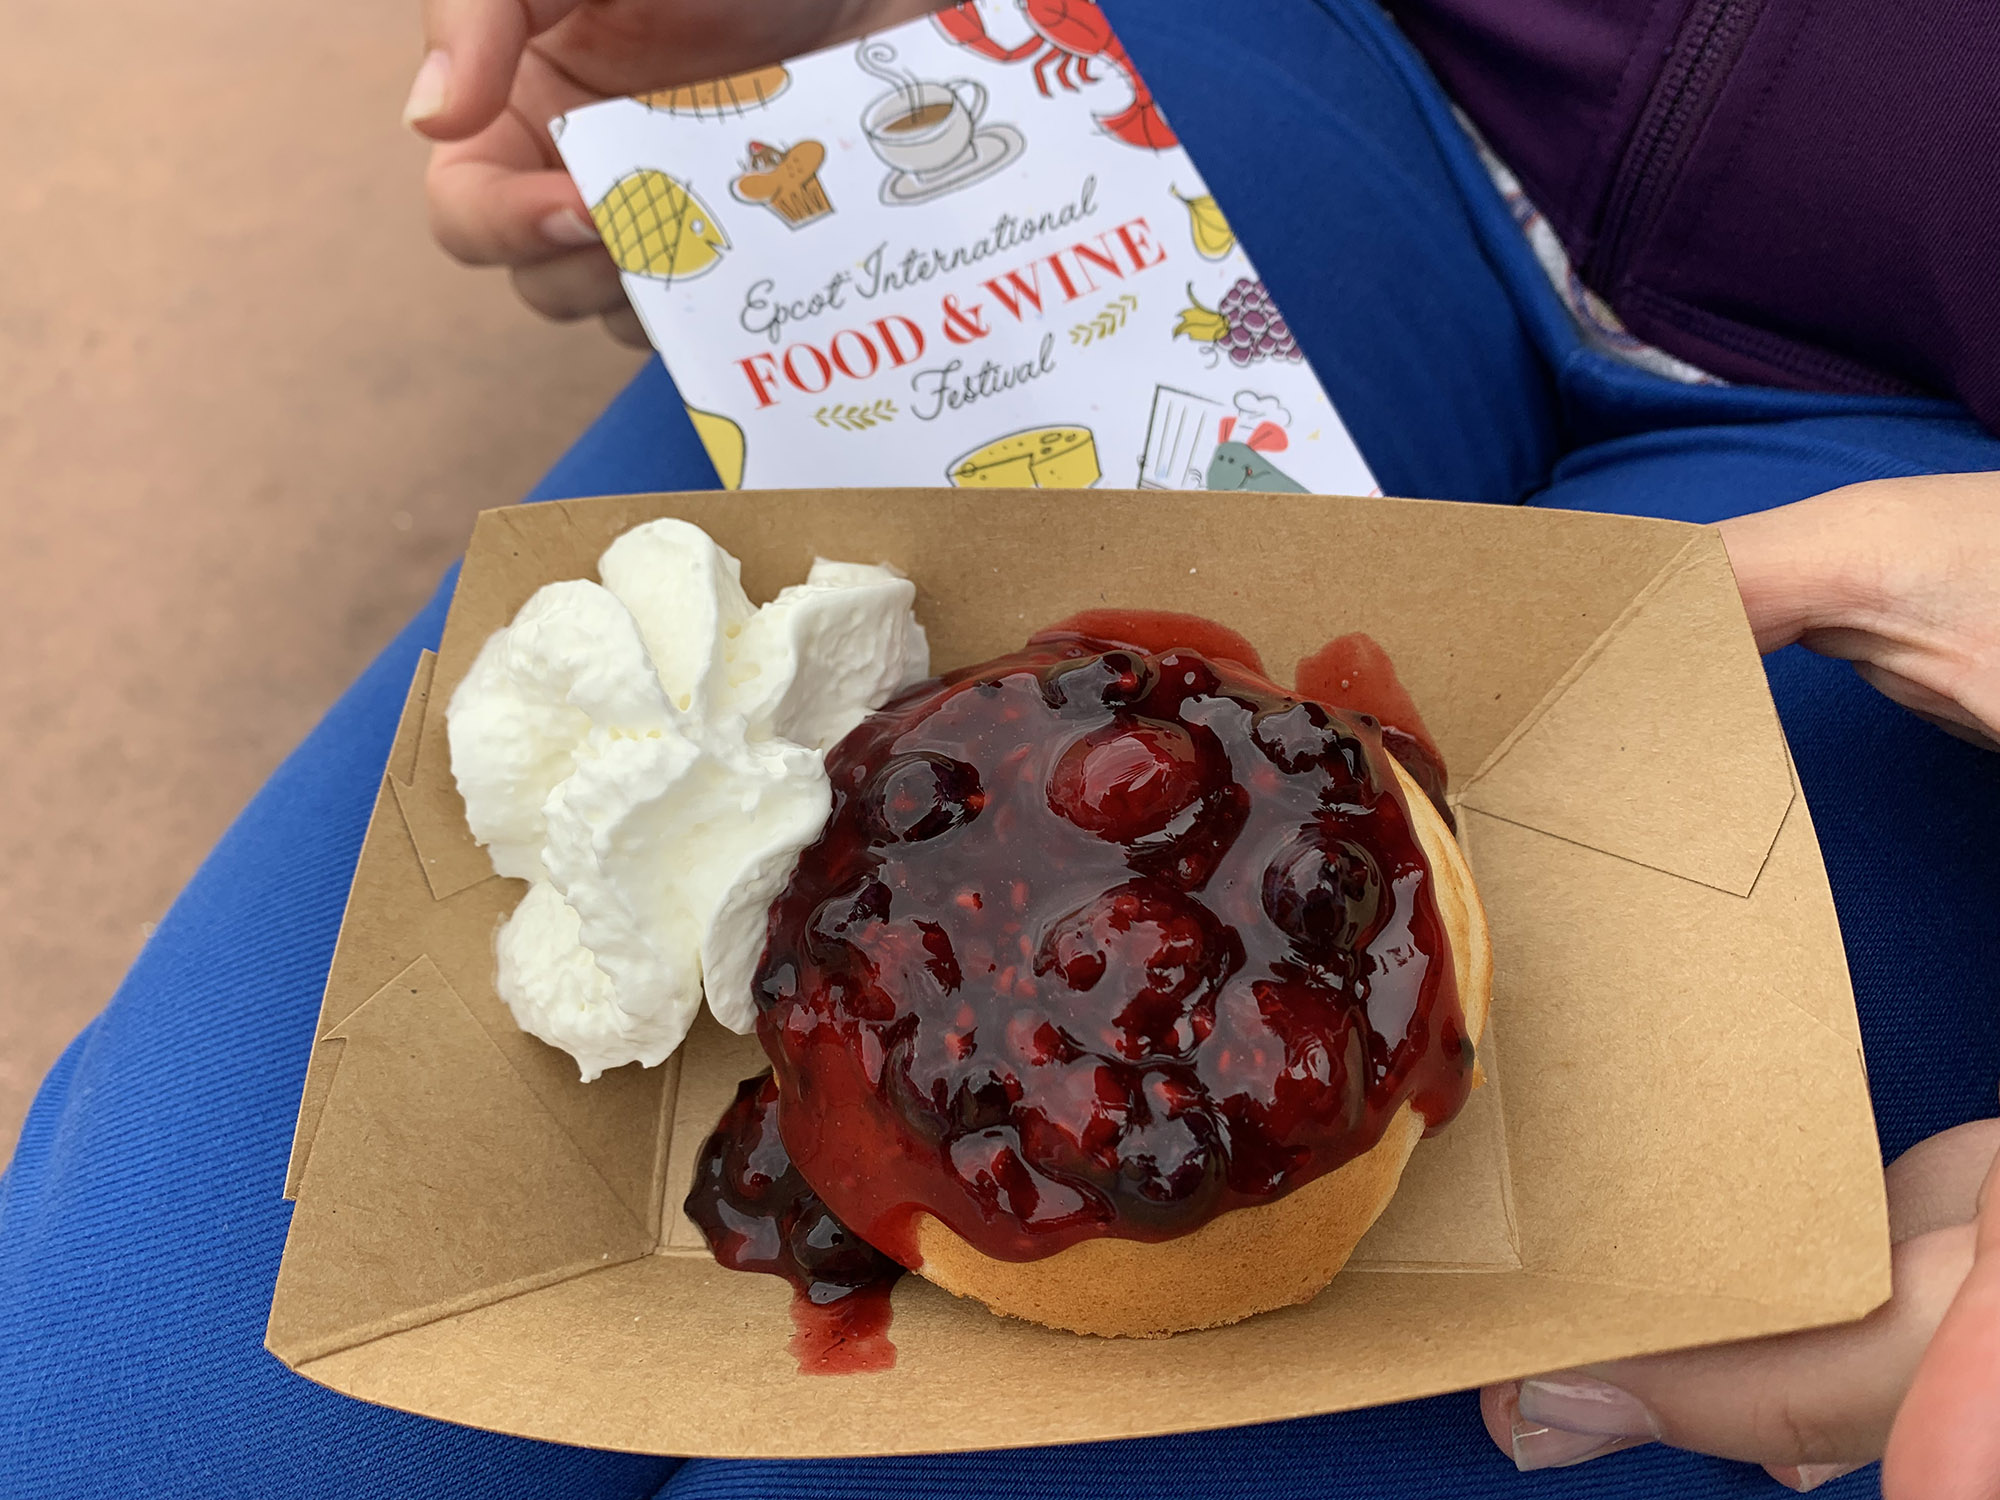 Reviews of Epcot Food and Wine Festival